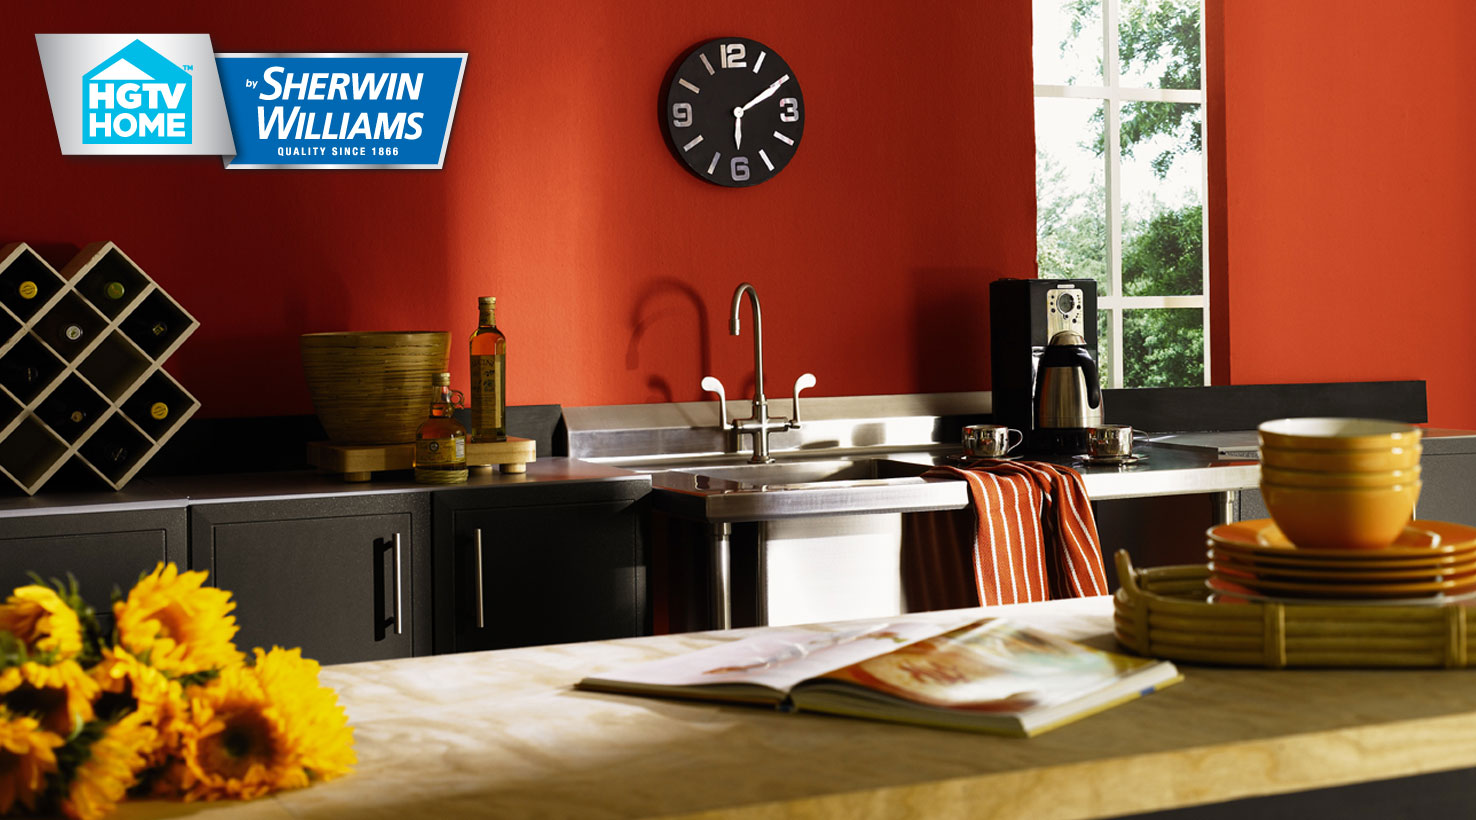 Global Spice Paint Color Collection Hgtv Home By Sherwin Williams